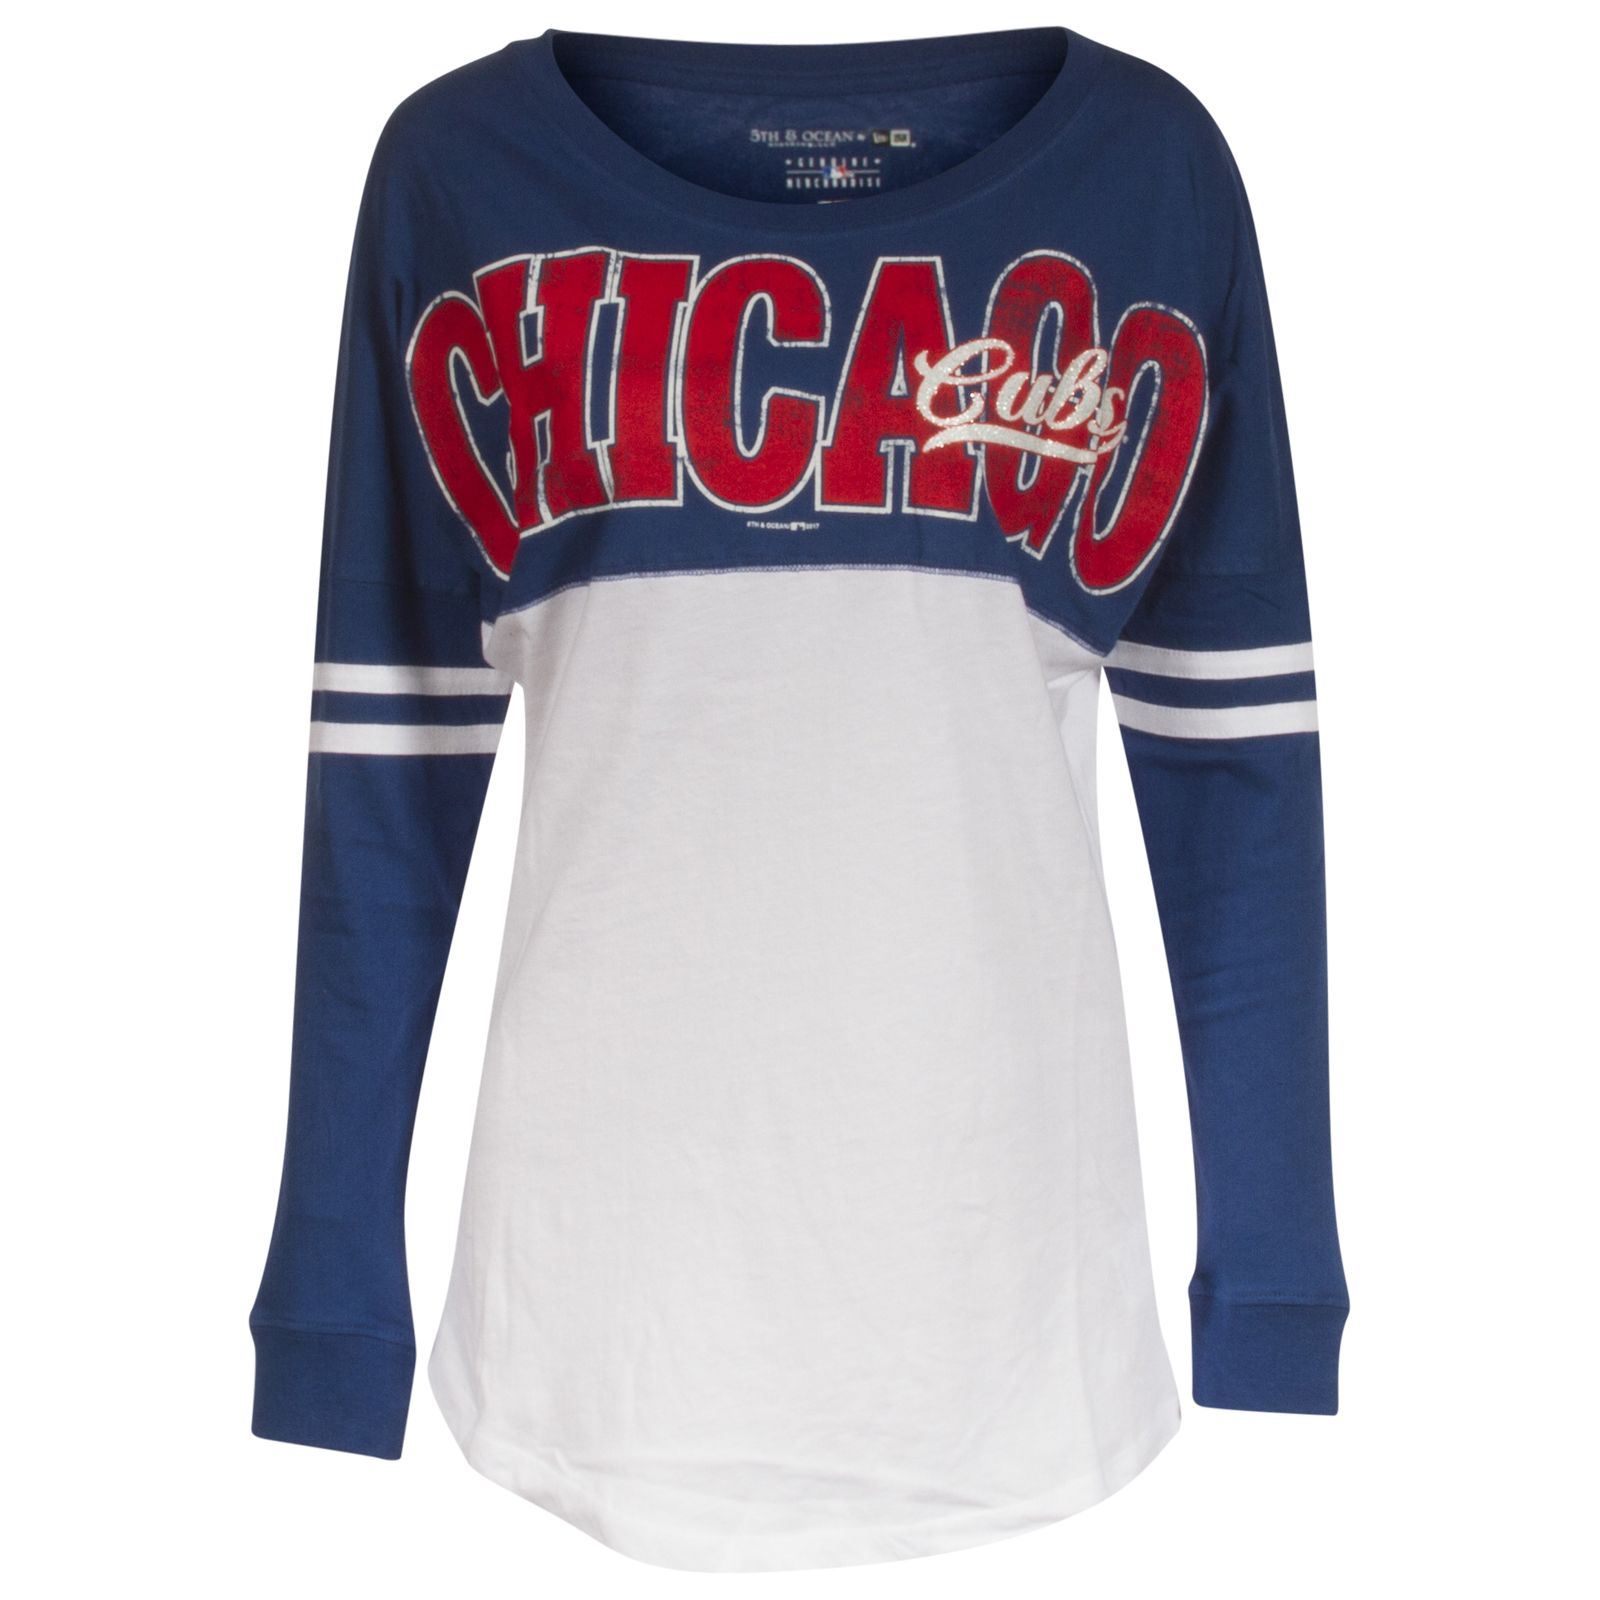 Chicago Cubs Womens Royal And White Front And Back Script Logos Long Sleeve Shirt By 5th Ocean Chicago Cubs Long Sleeve Shirts Cubs Clothes Hoodies Womens [ 1600 x 1600 Pixel ]